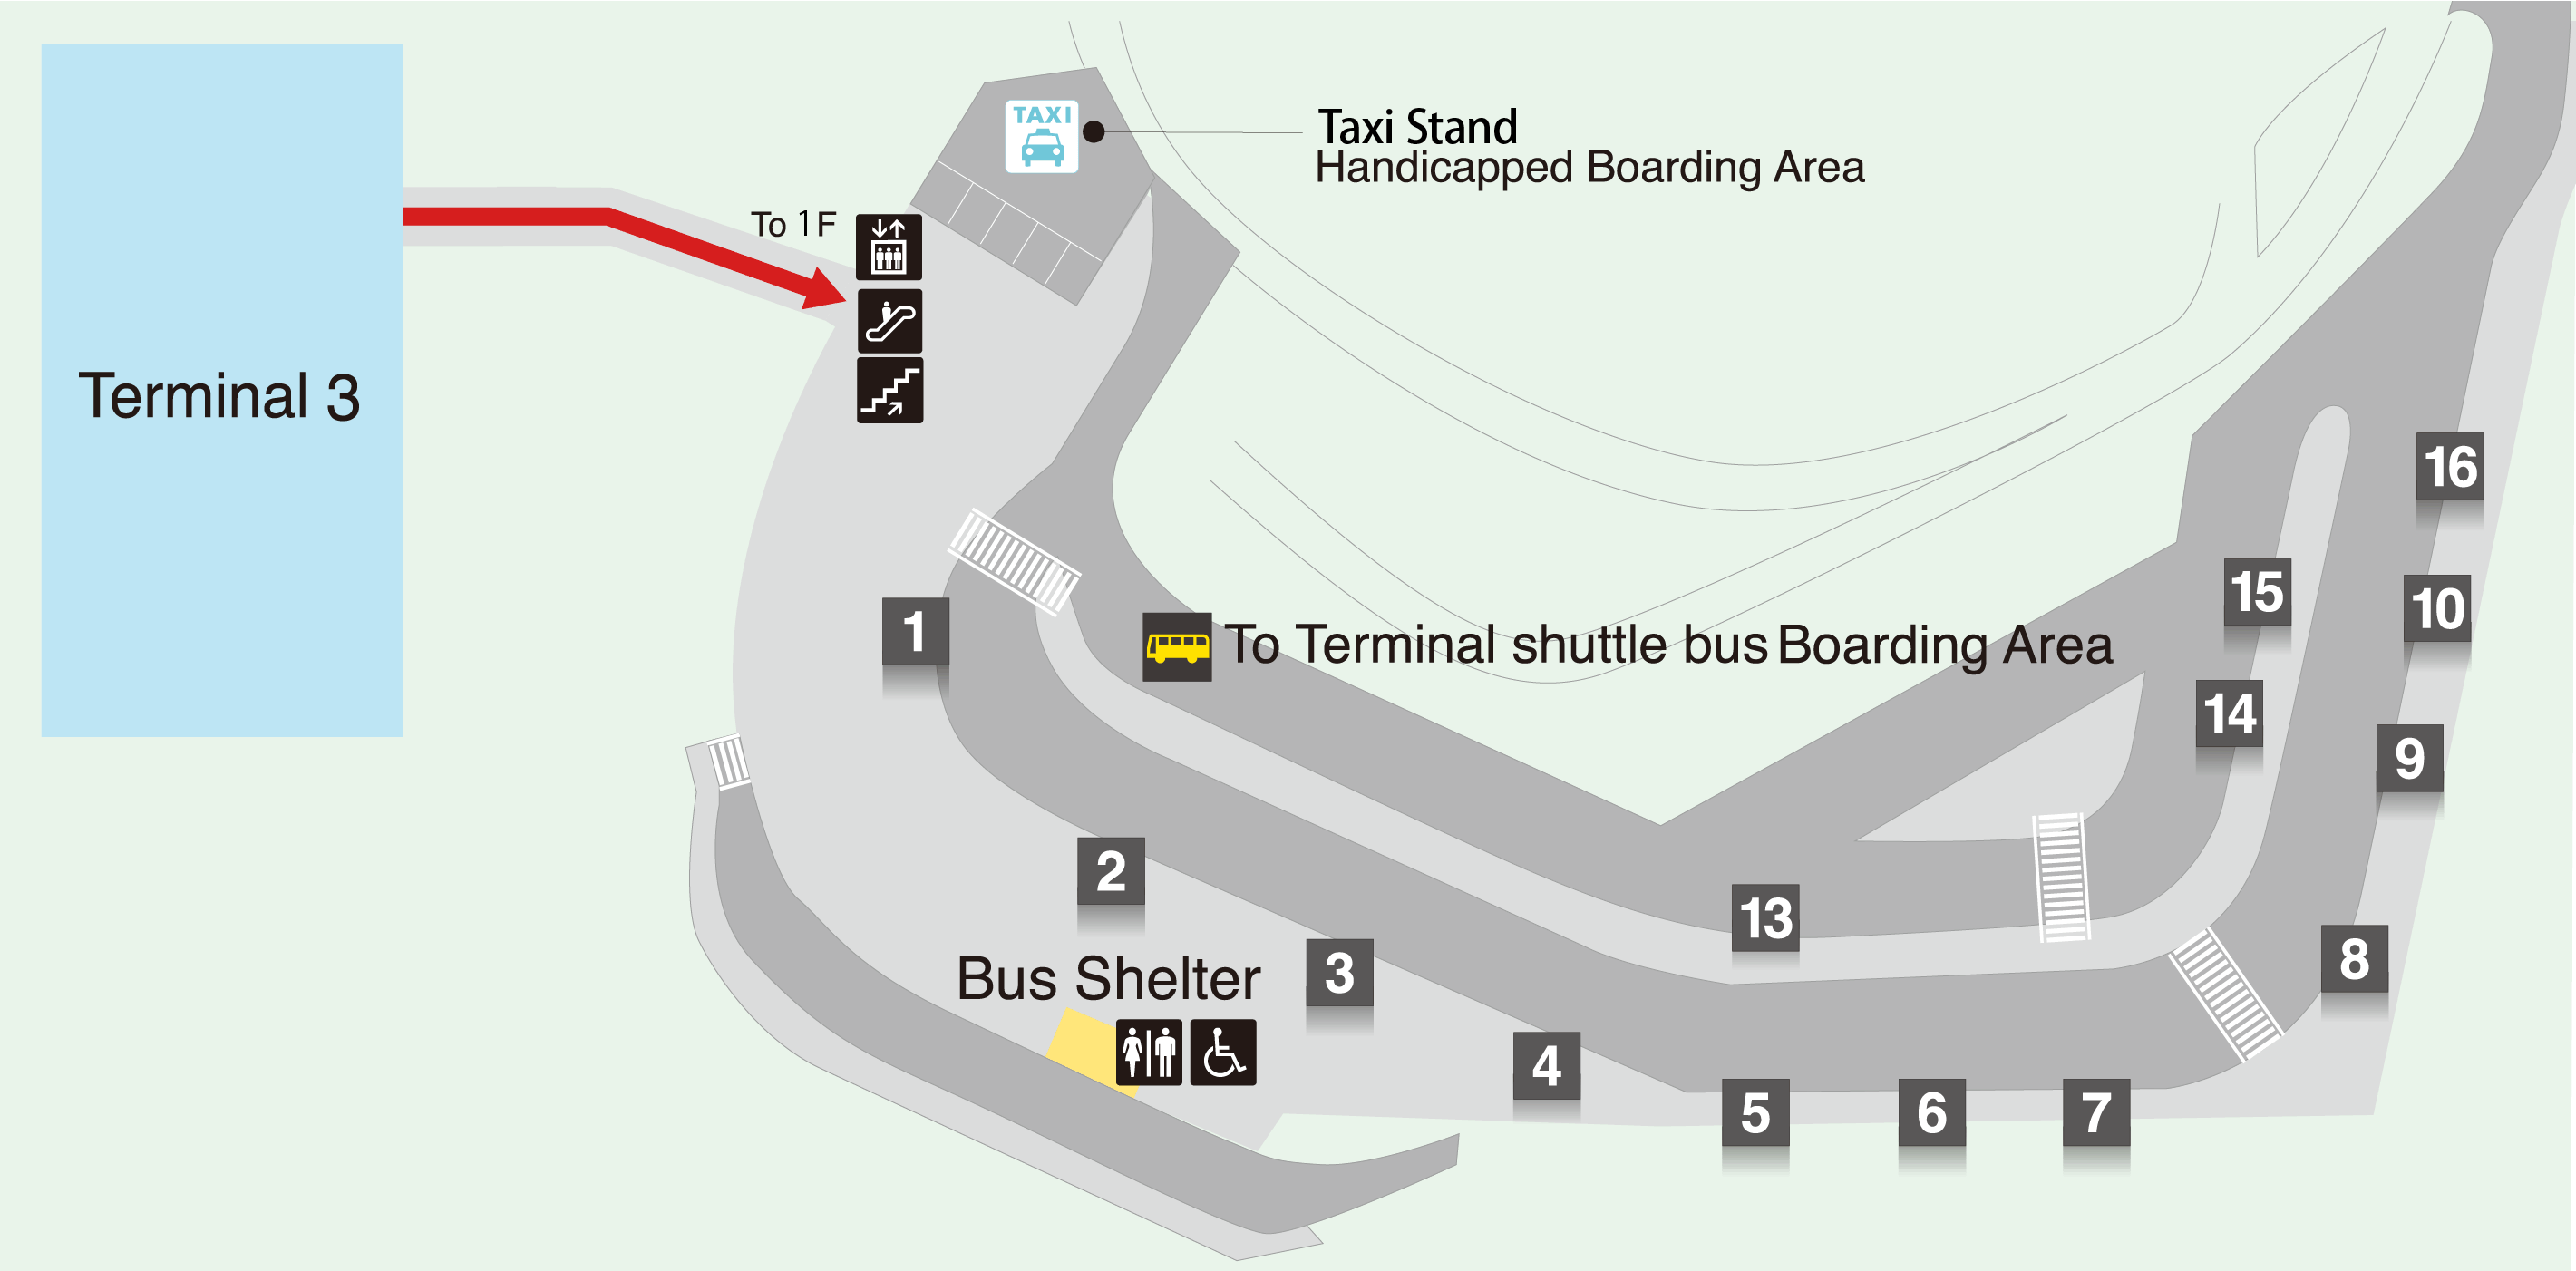 Map of taxi stands at Terminal 3.